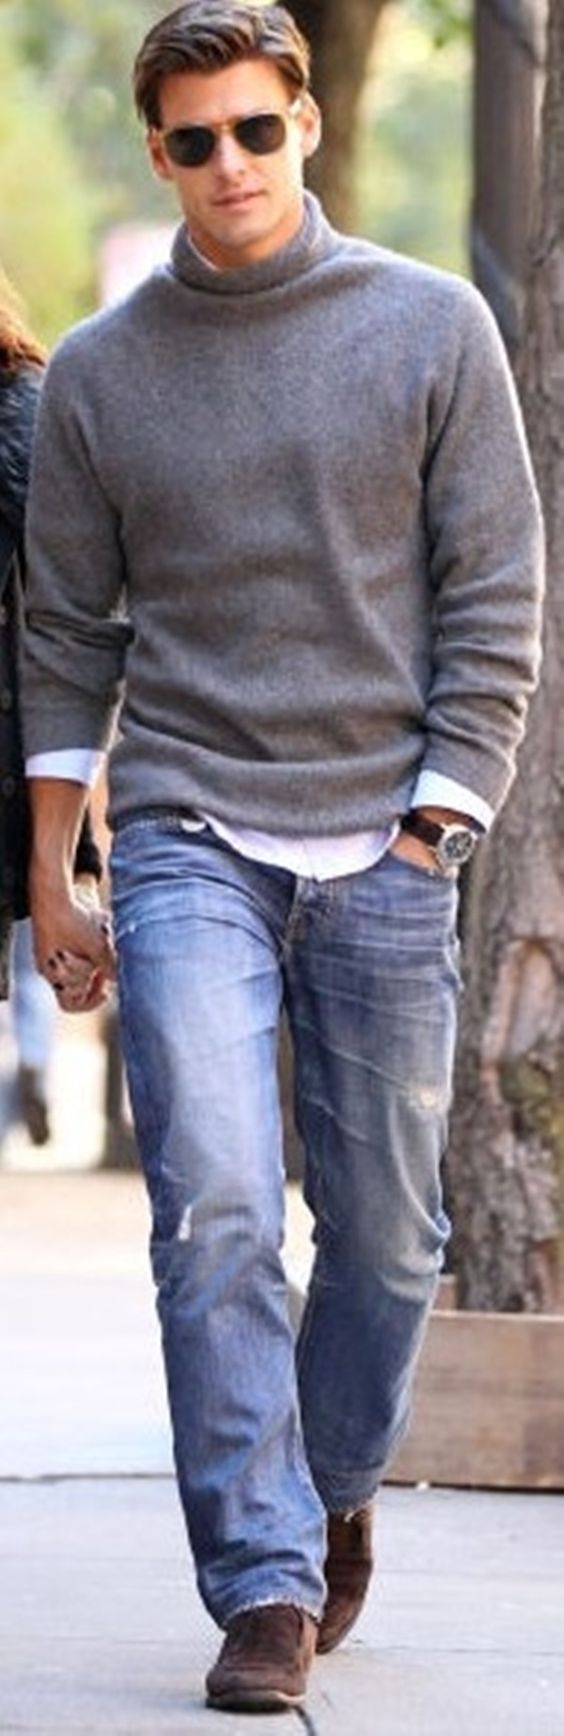 Image For Fashion For 50 Year Old Men All Things Men Pinterest Fashion Man Style And